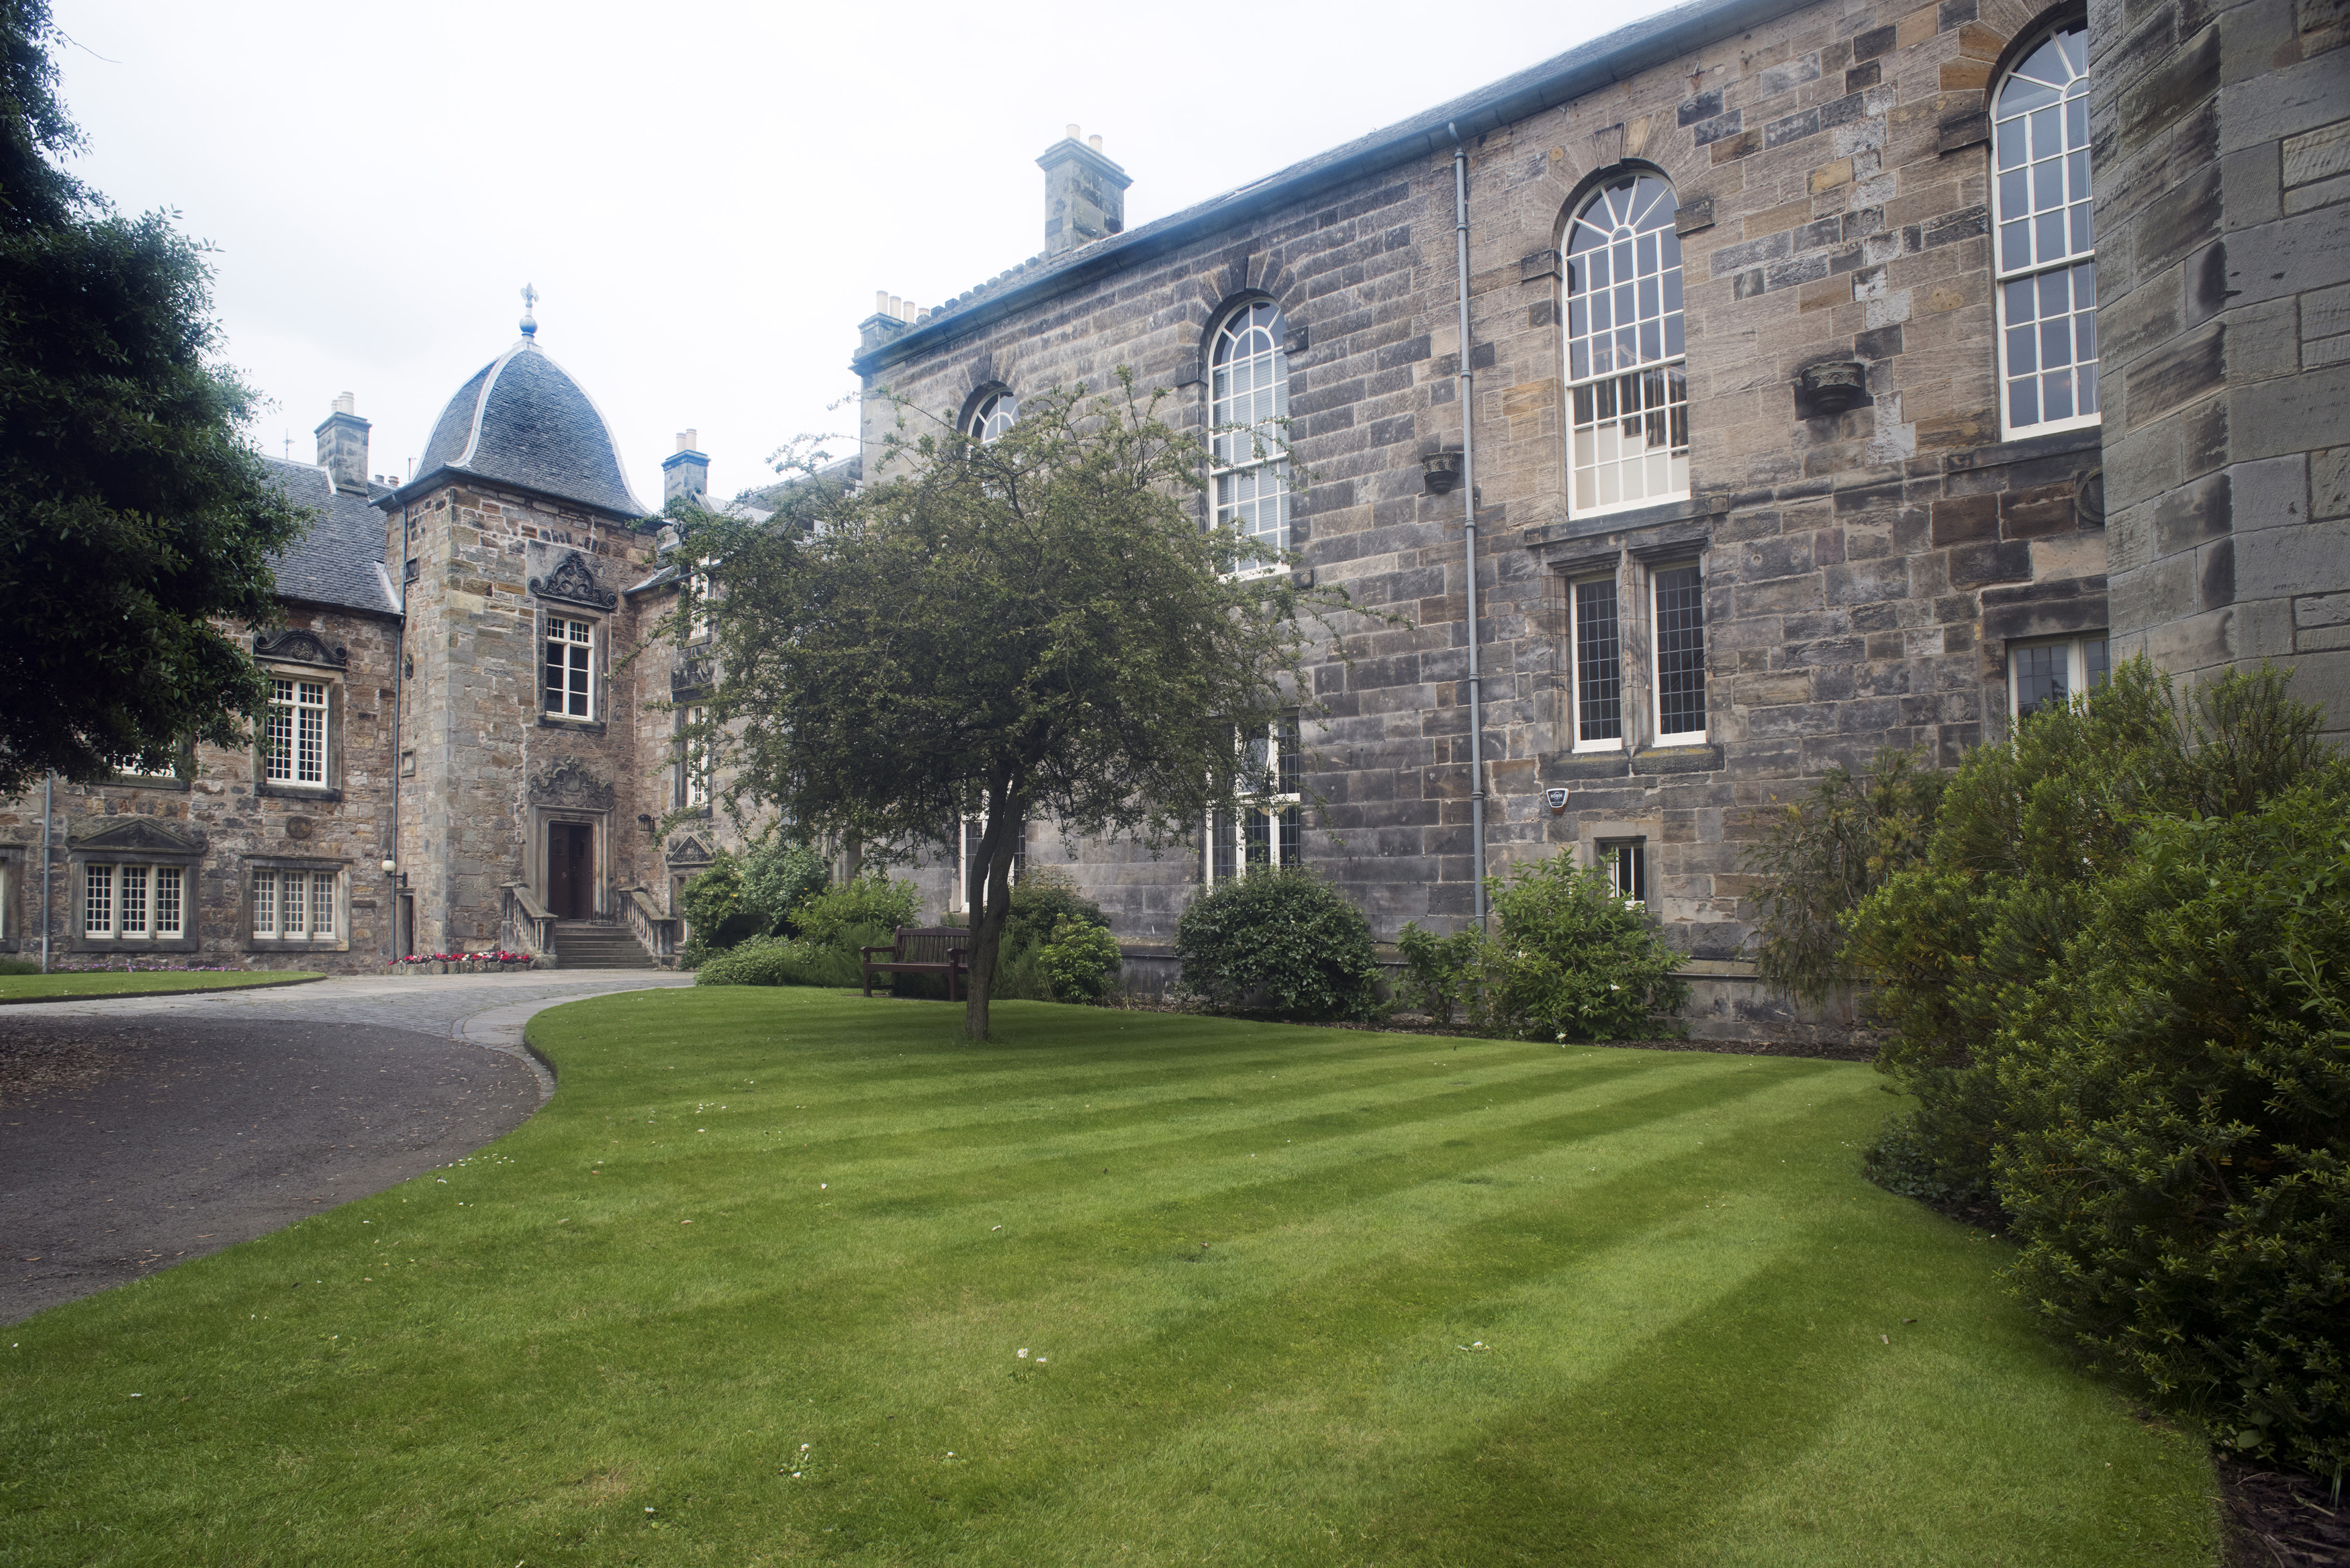 Grounds and historic buildings of St Andrews University, Scotland showing manicured lawns and old stone architecture with graceful arched windows